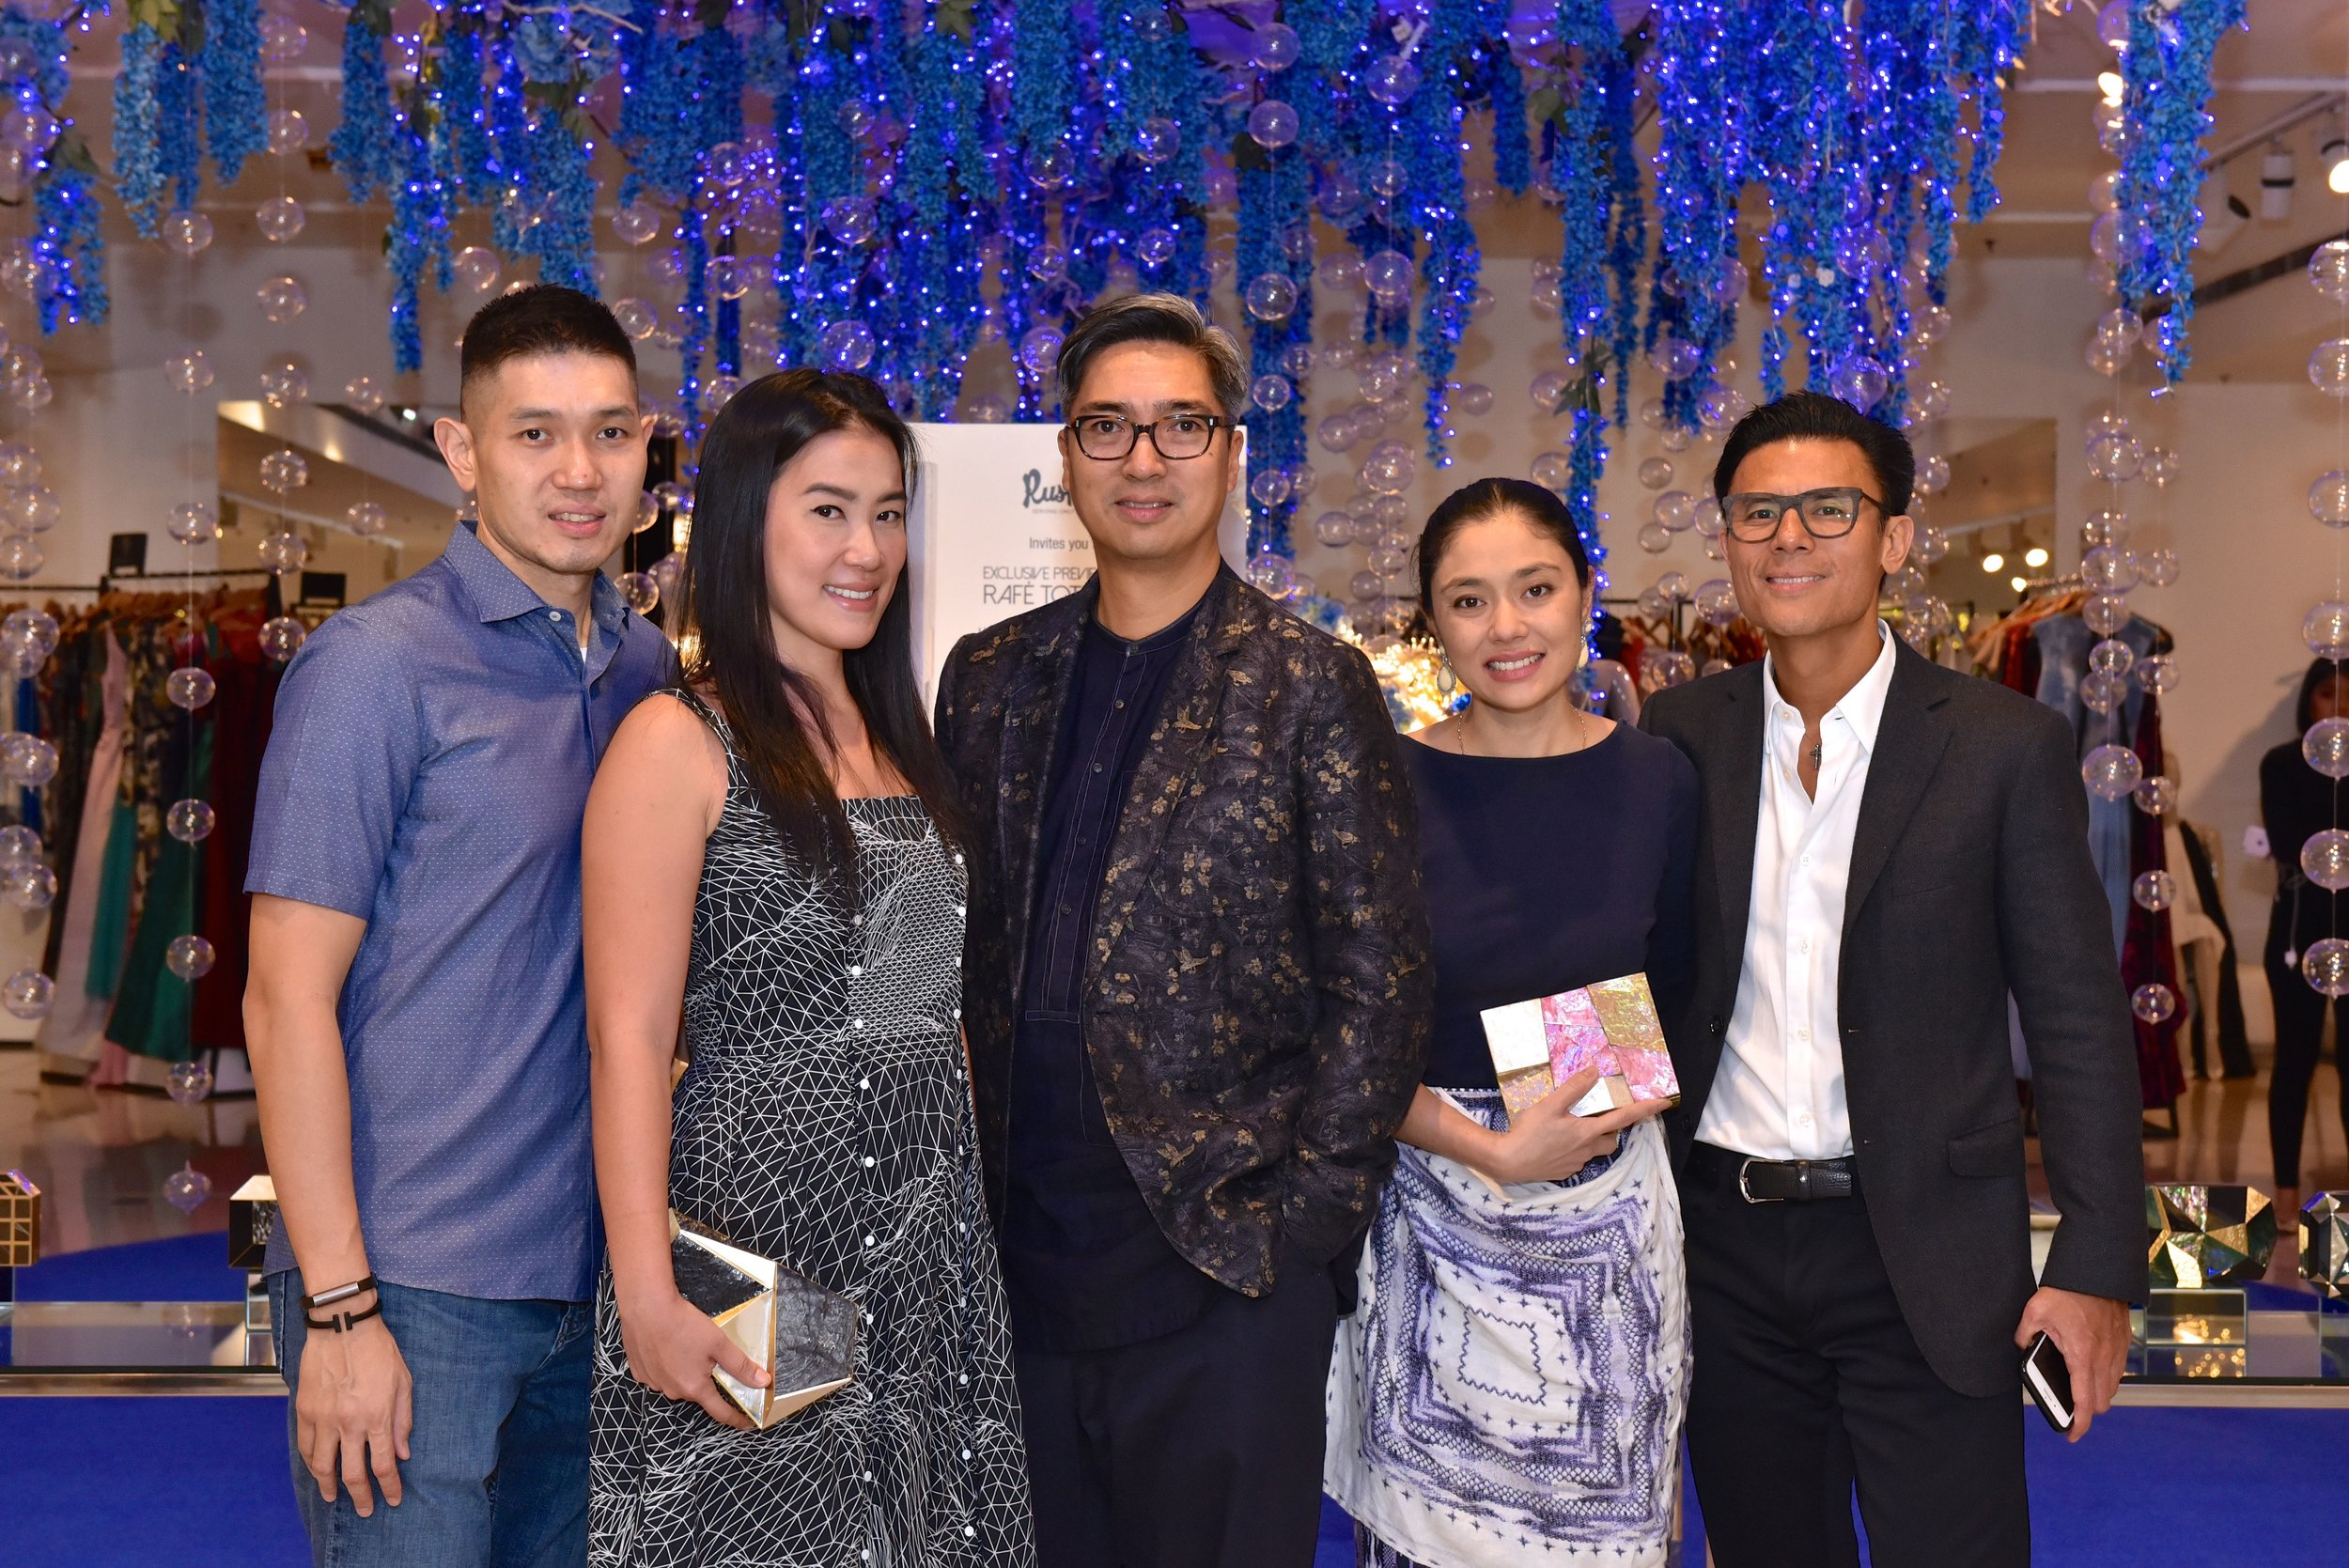 Mike Huang, Vice President of Rustans and his wife Kathy Huang, me, Dina Arroyo Tantoco, Marketing Director and Donnie Tantoco, President of Rustans